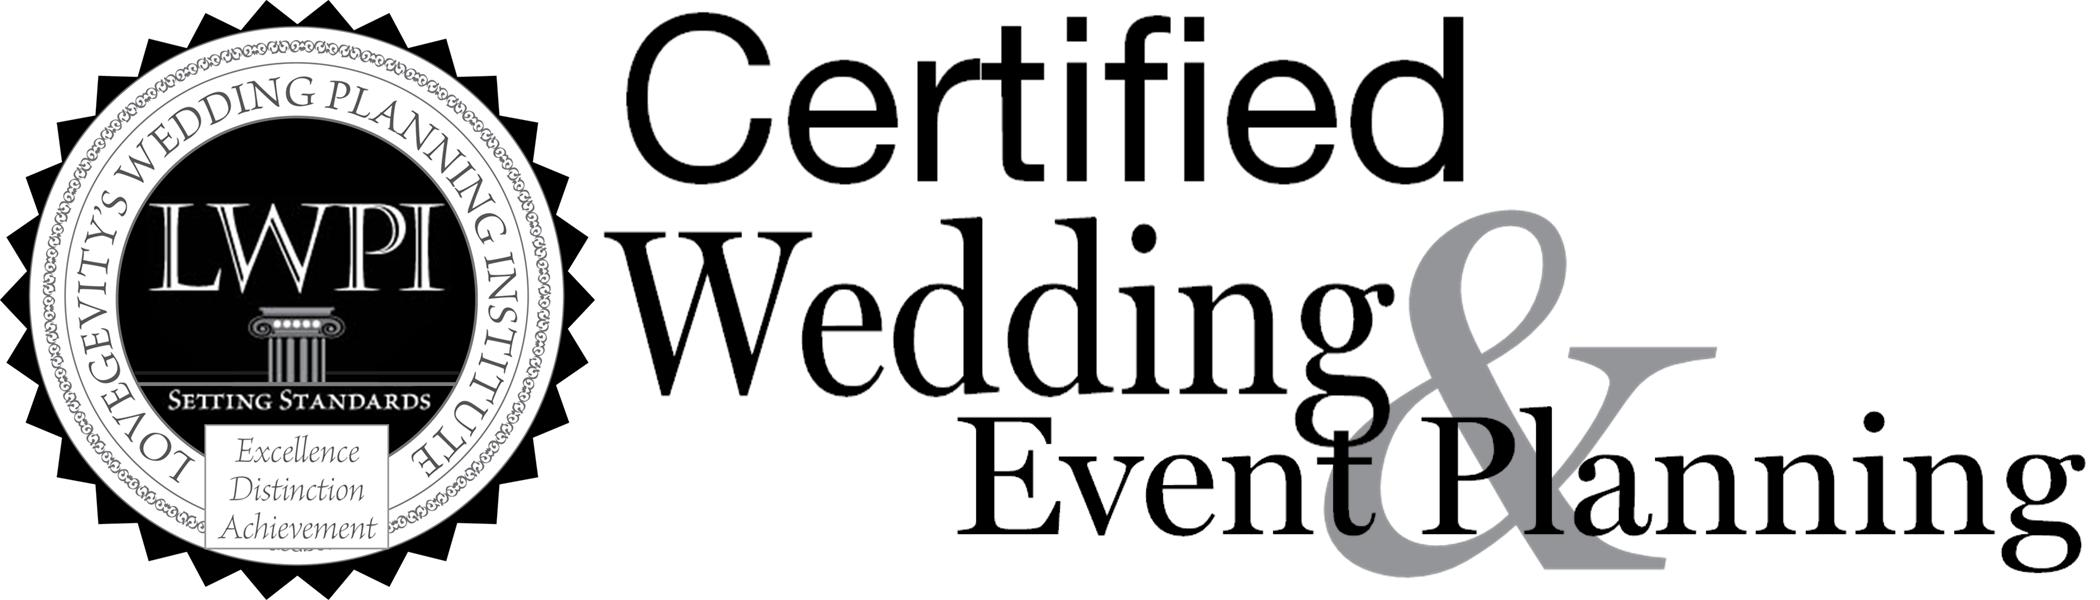 Learn more about the Certified Wedding and Event Planning Course